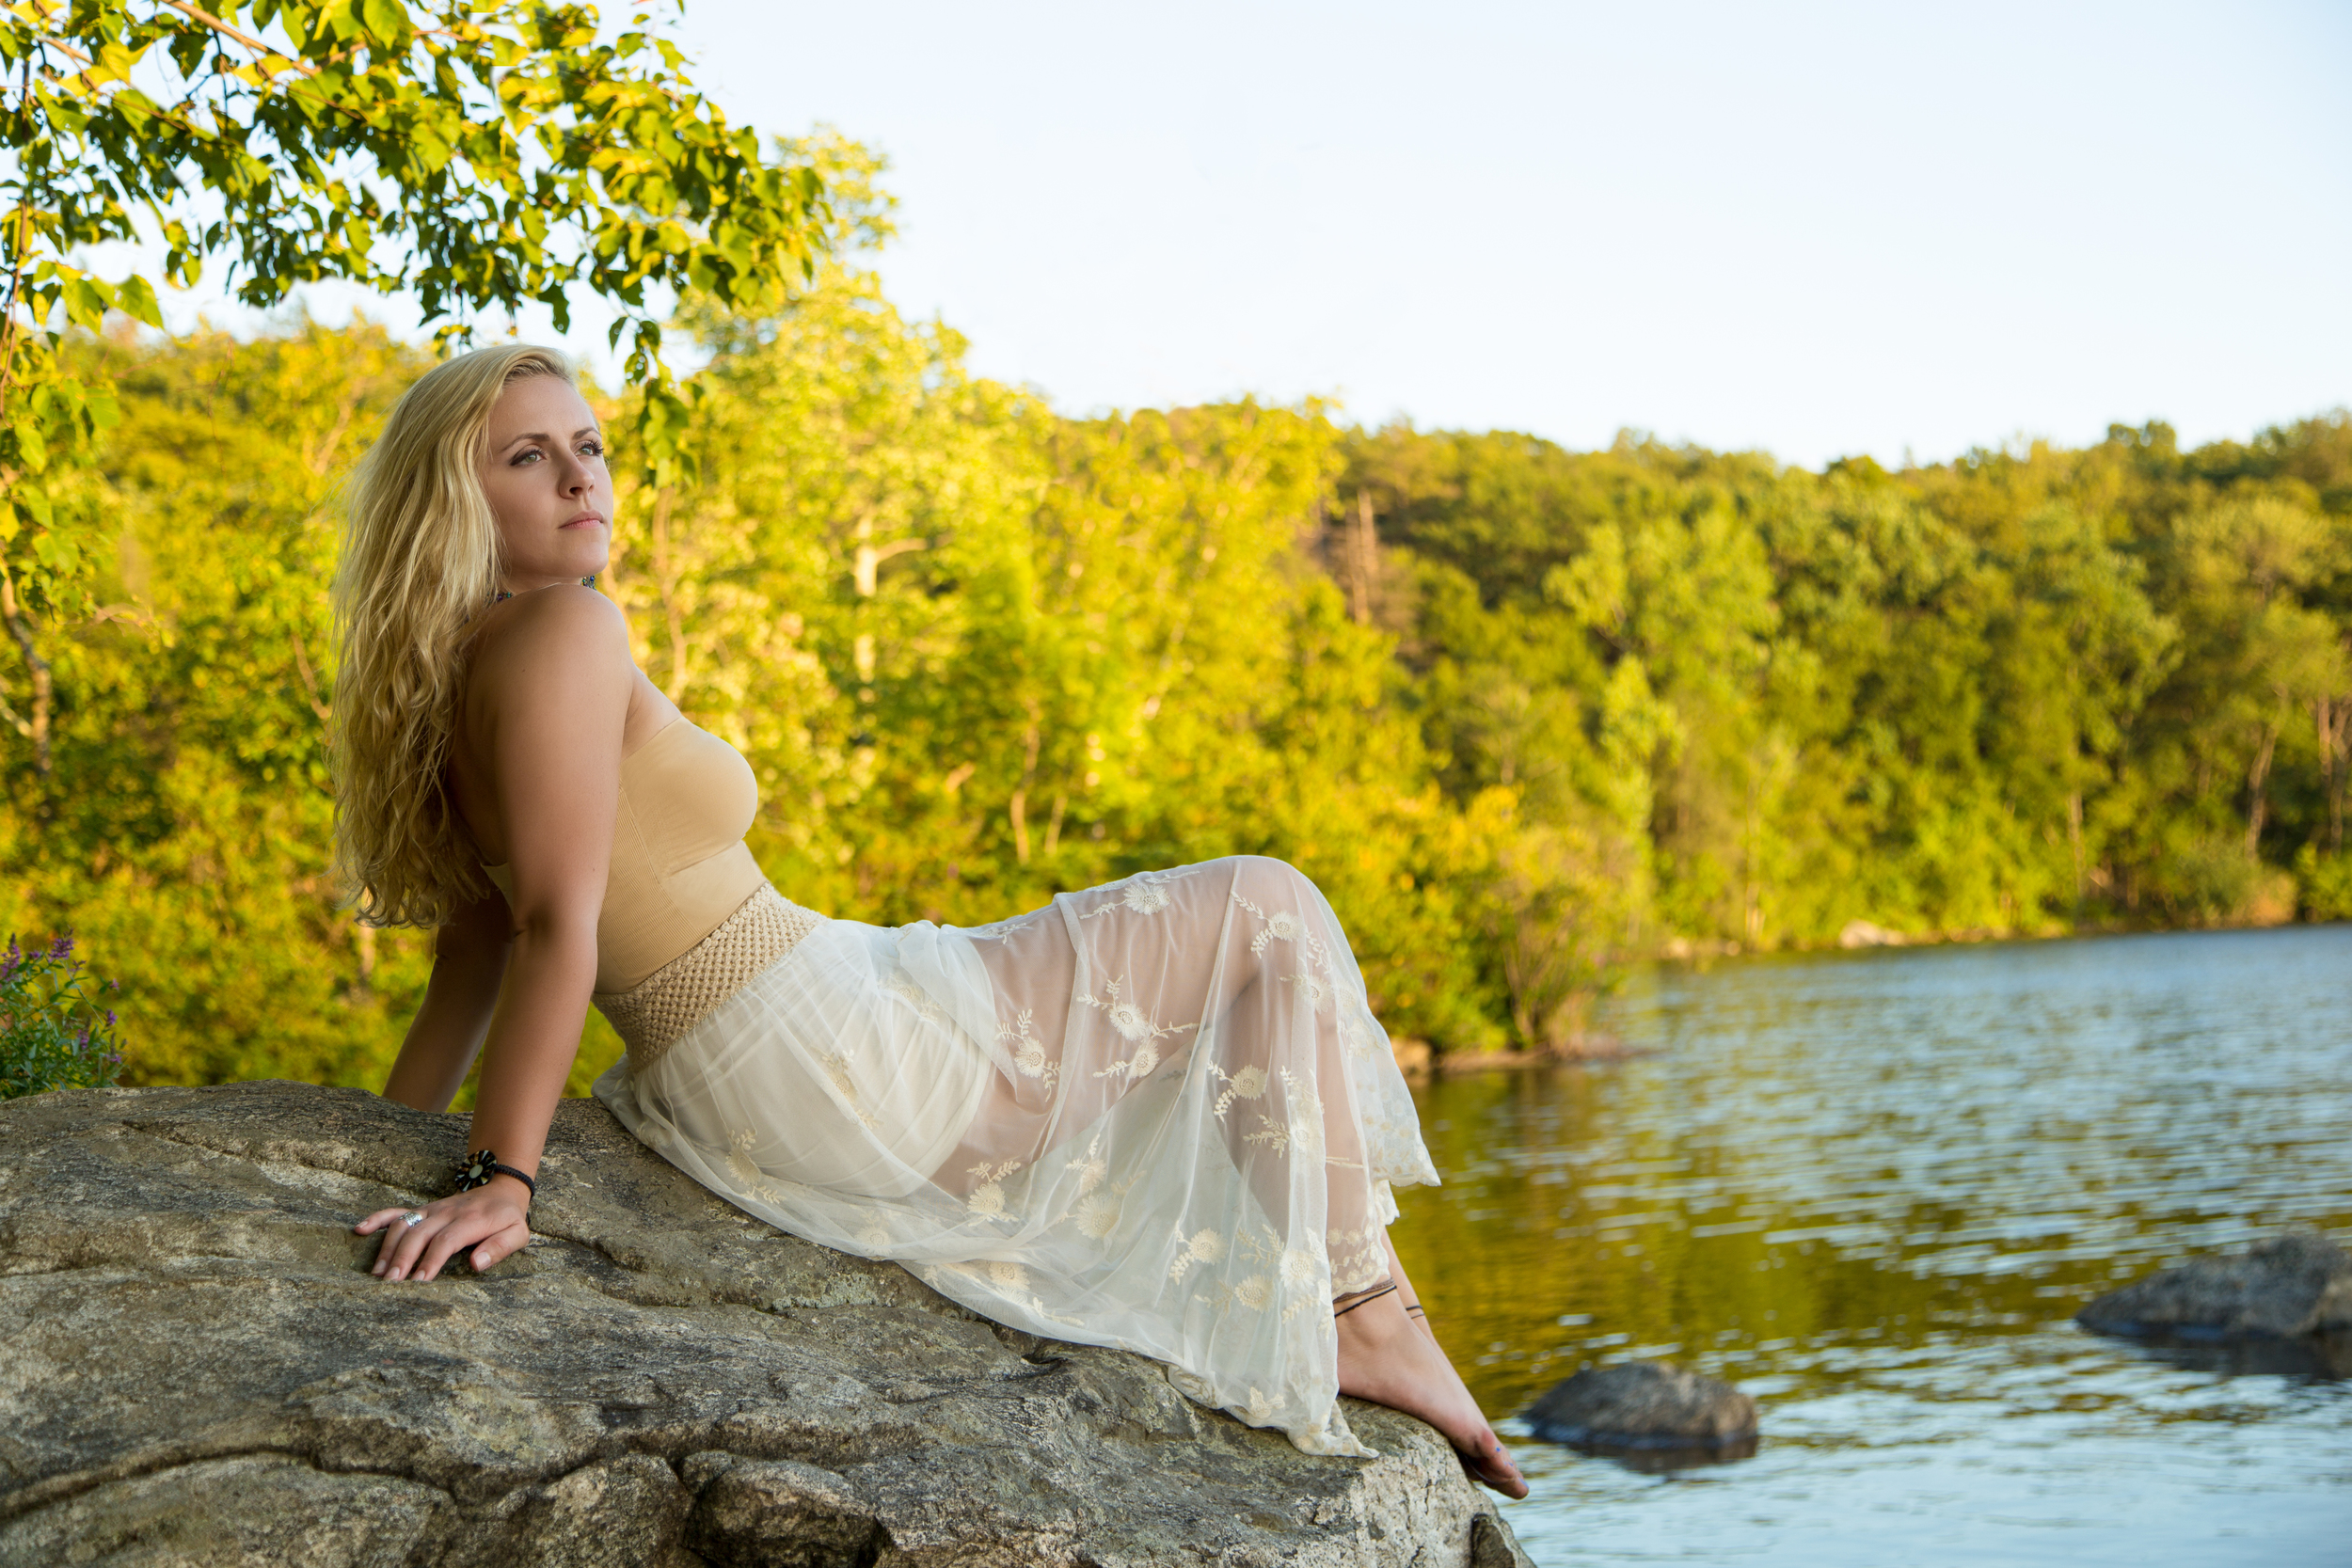 © RUSSELL-HOWLAND PHOTOGRAPHY 2014